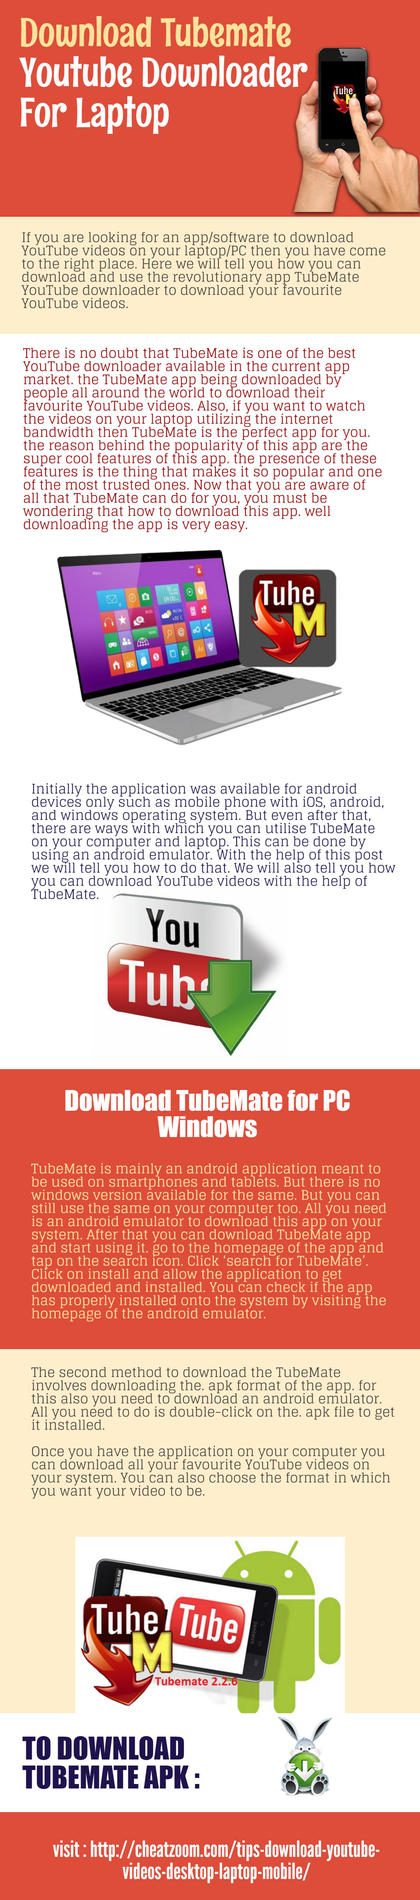 Glongmax 0 0 Download Tubemate Youtube Downloader For Laptop By Glongmax To  Download' Clipconverter1080pyoutubevideo